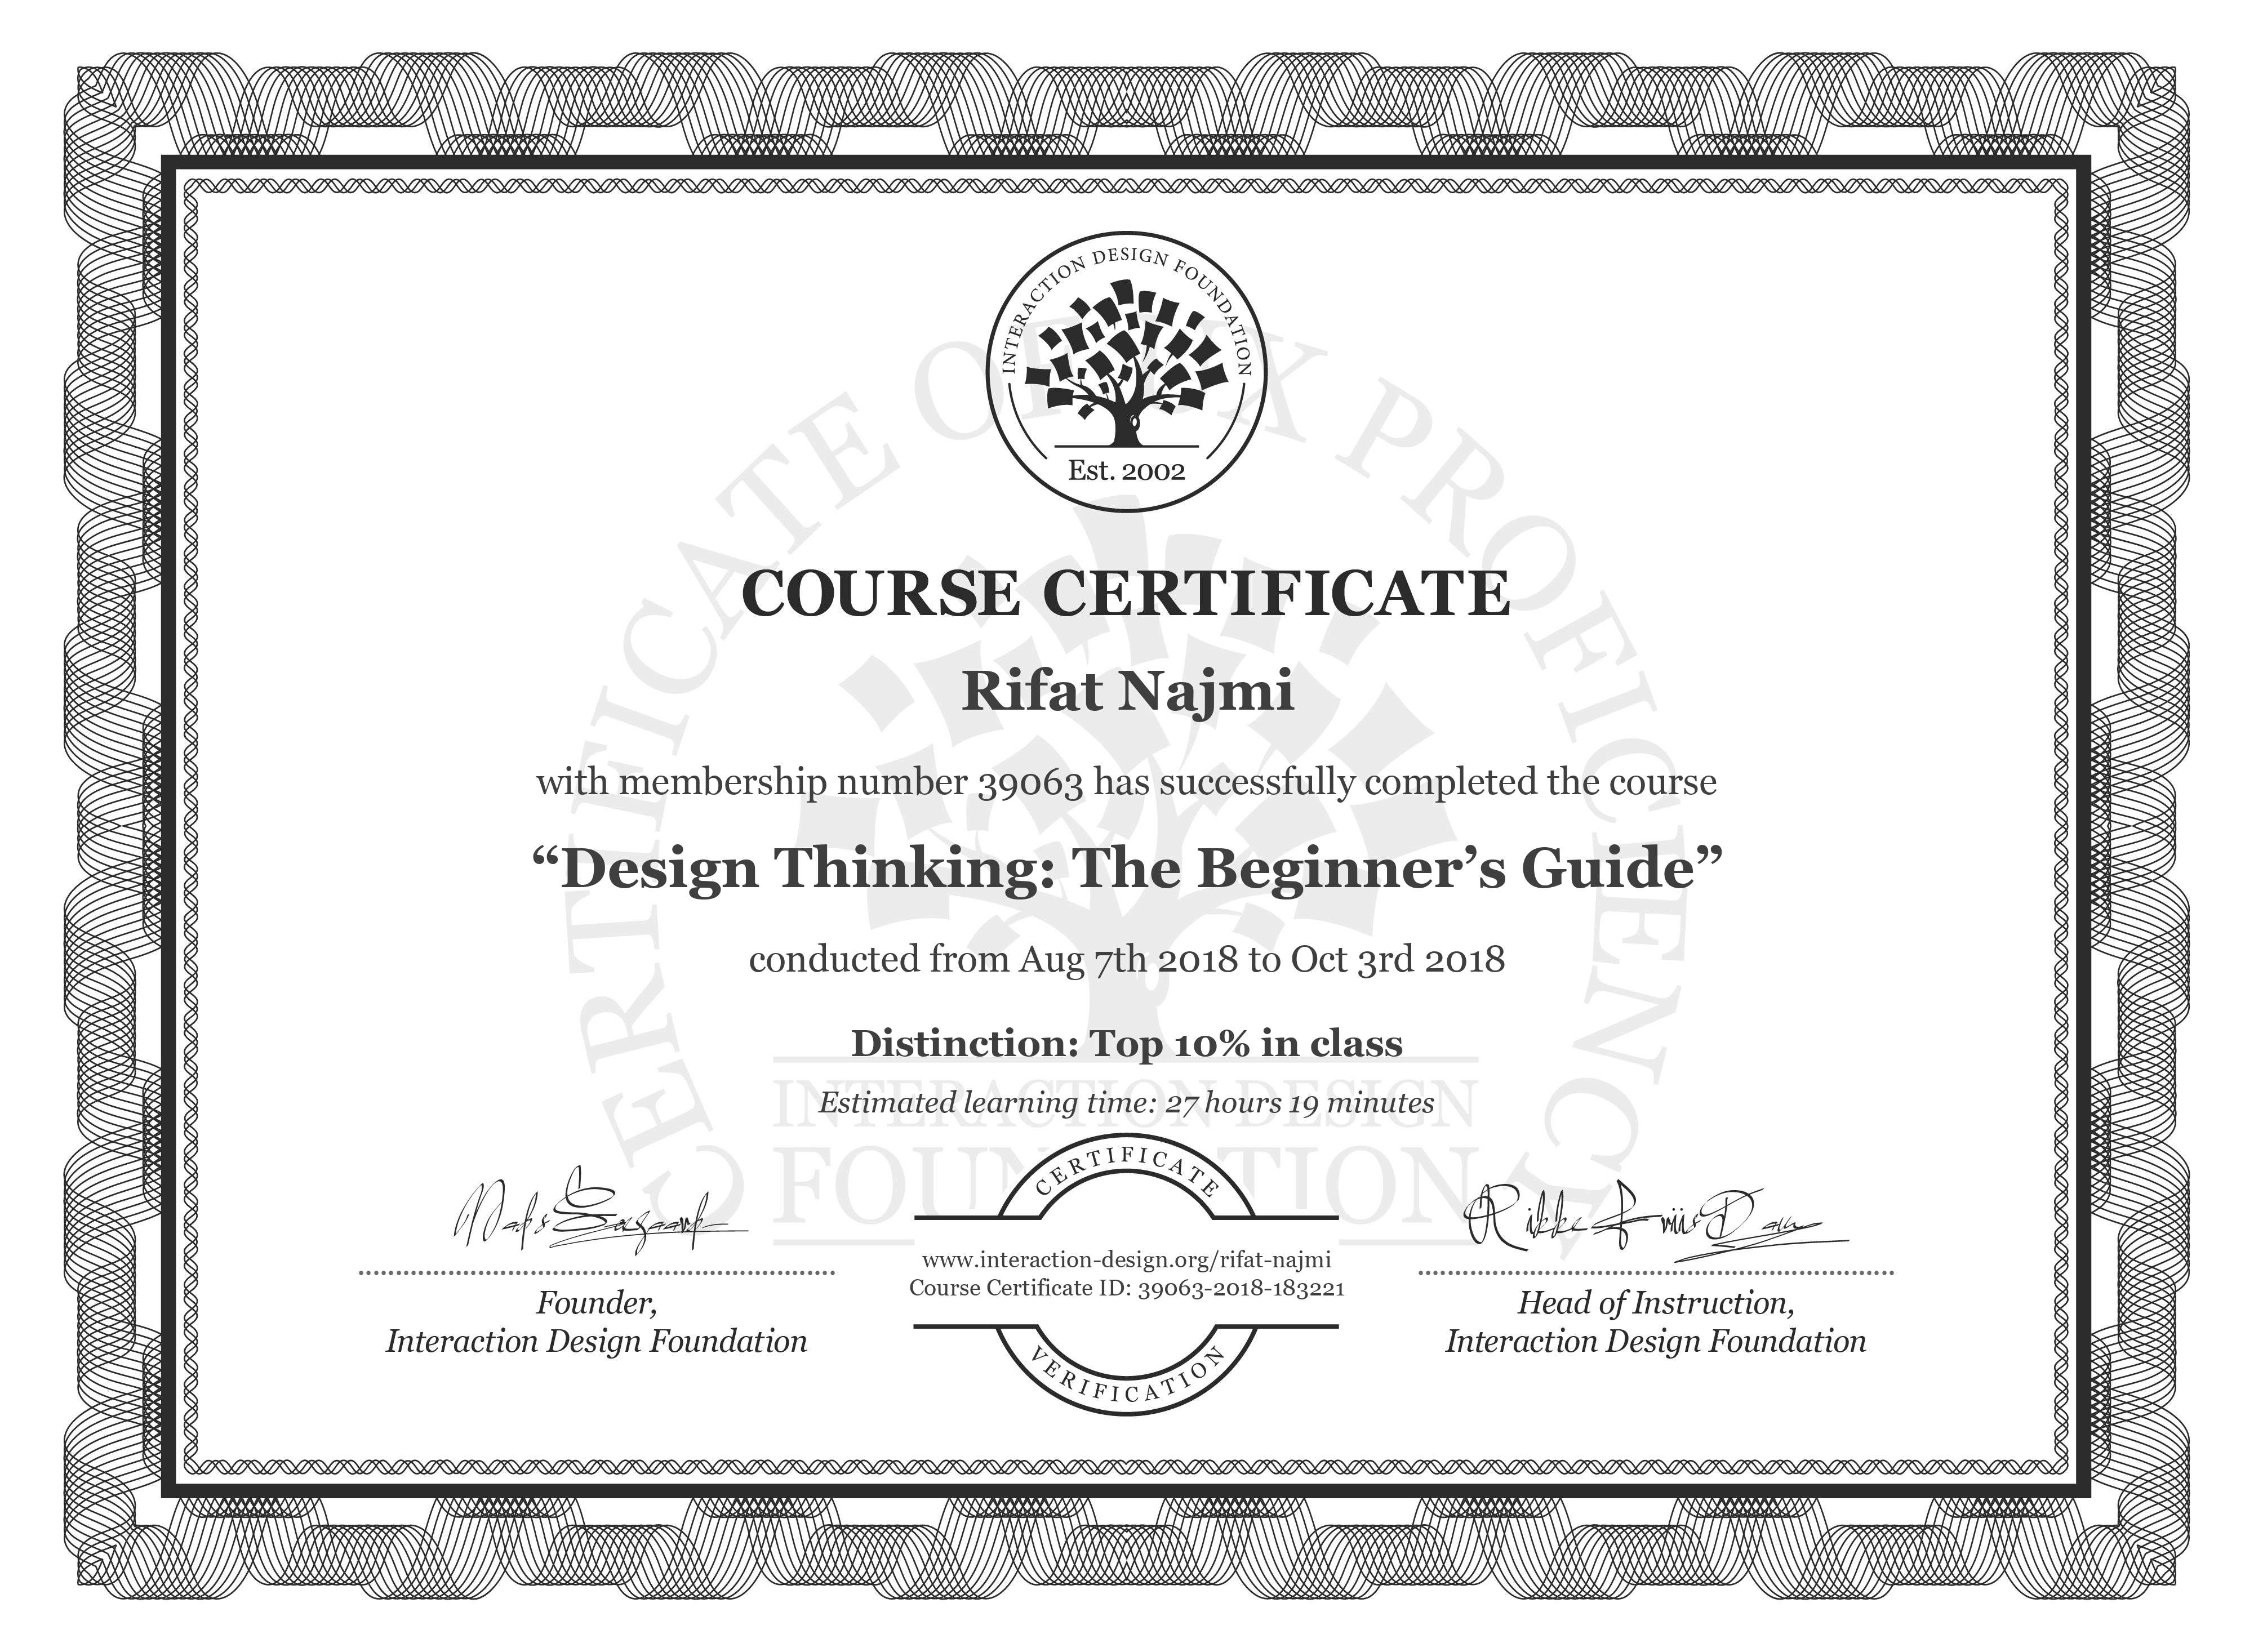 Rifat Najmi's Course Certificate: Design Thinking: The Beginner's Guide